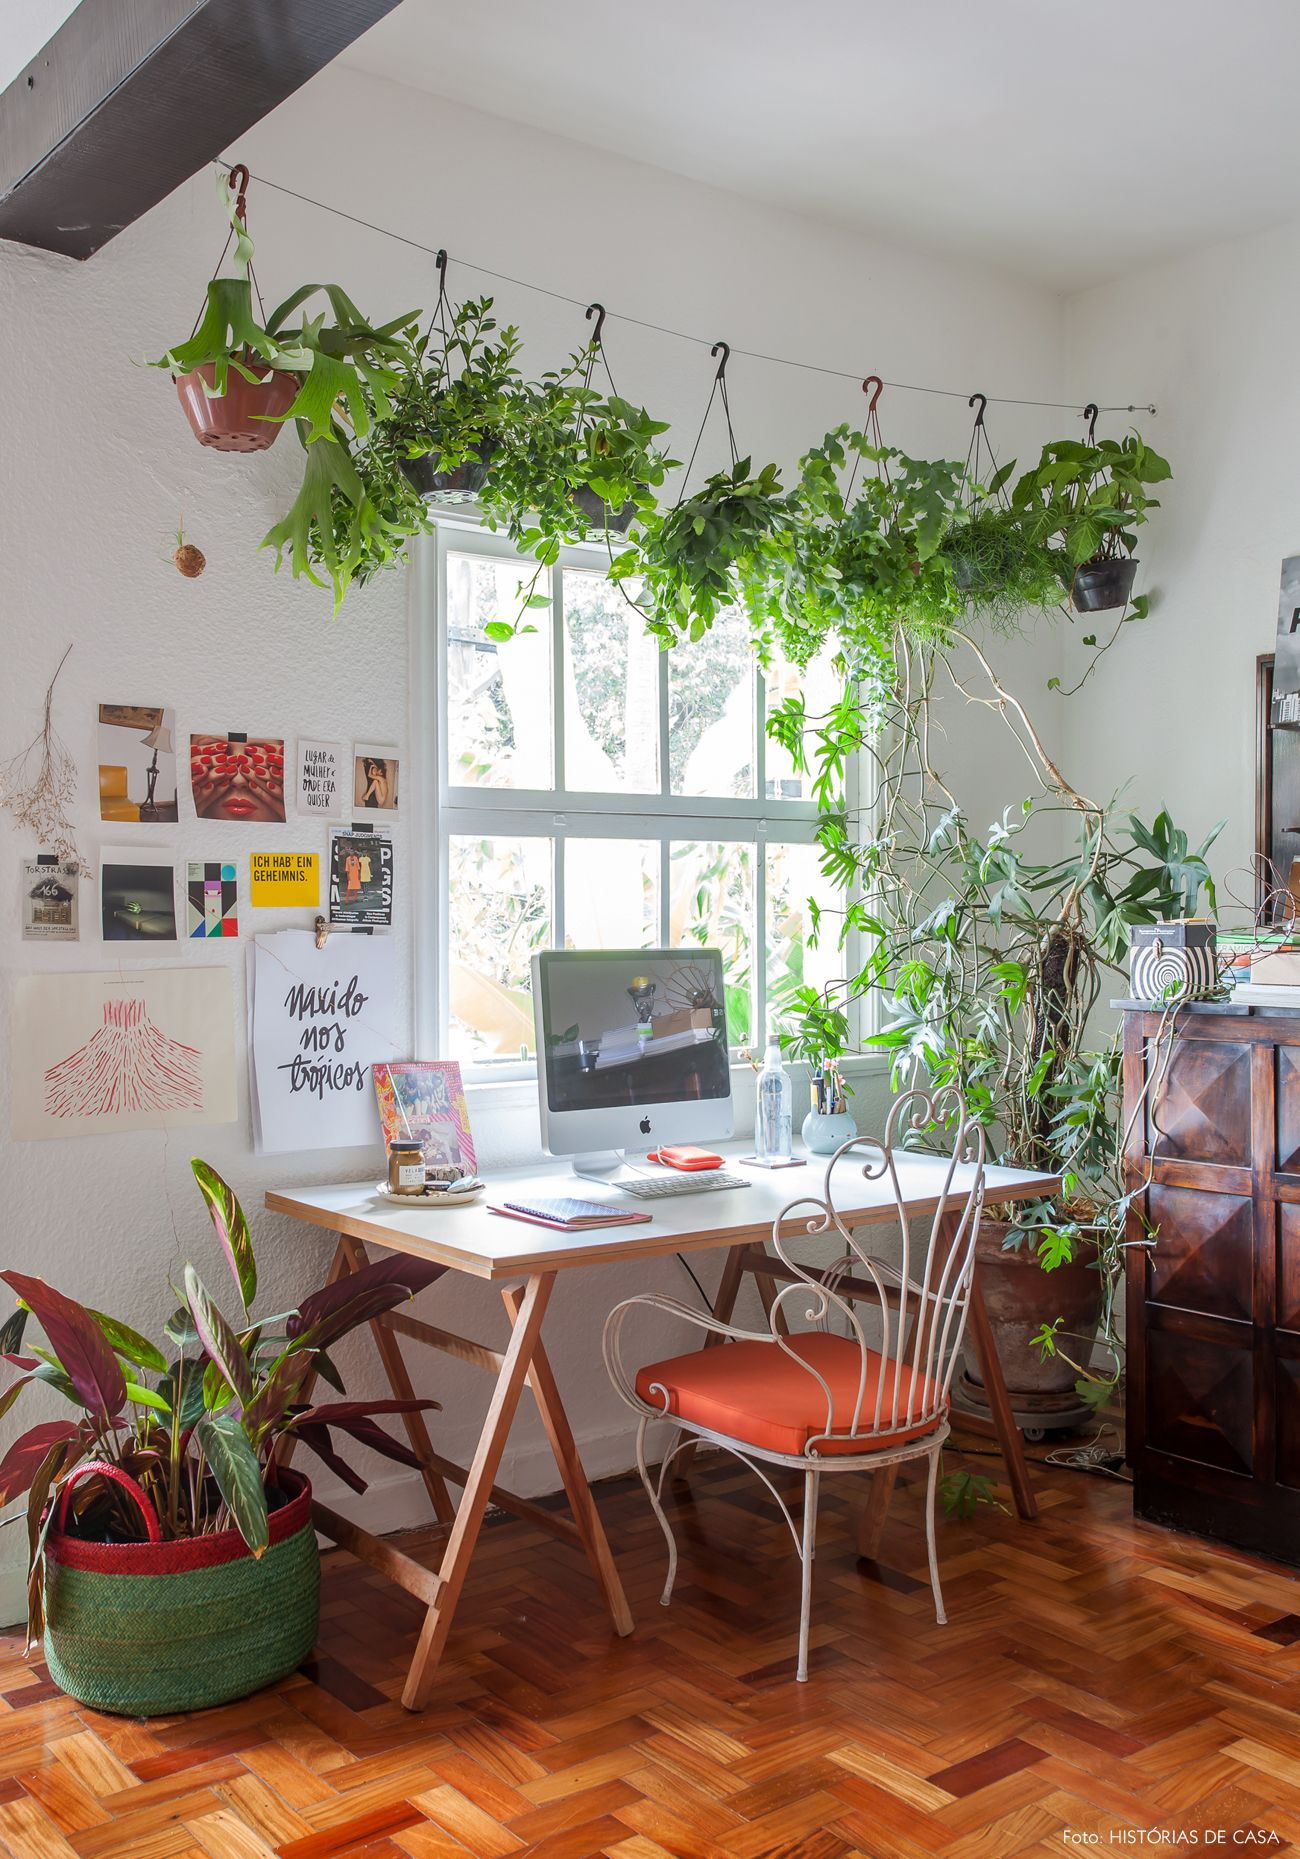 Home Decor: Green Innovations recommendations